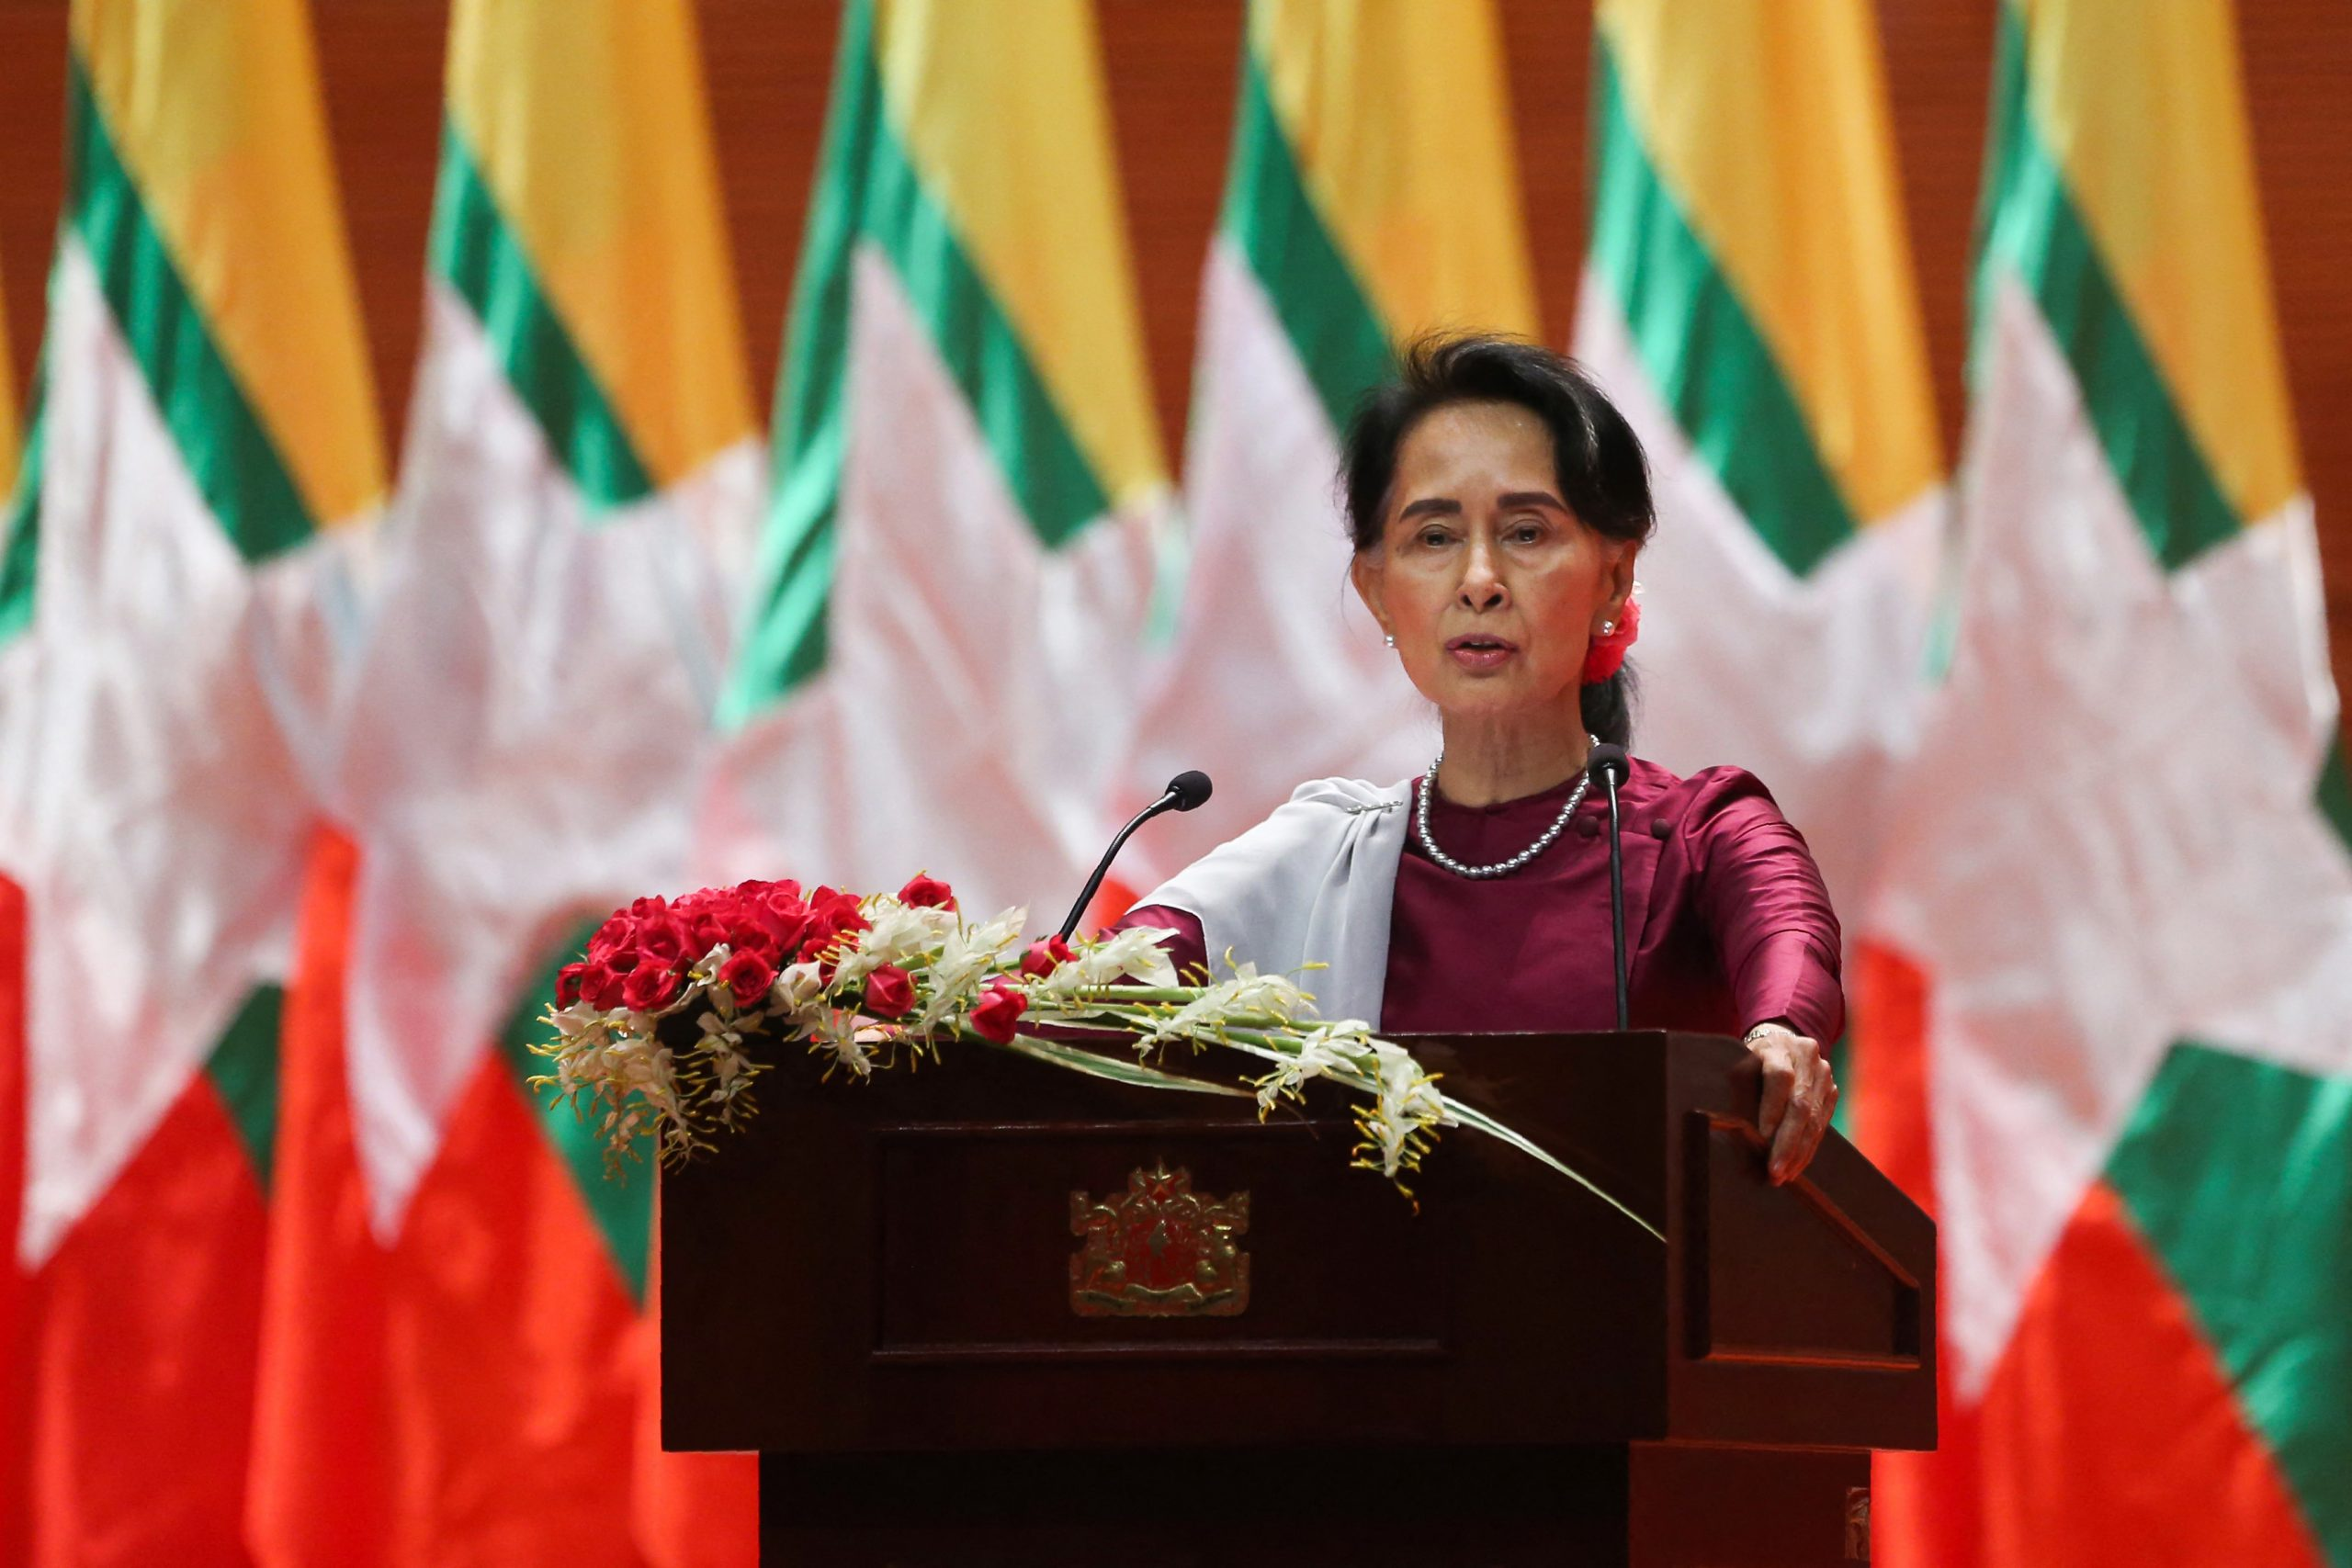 Myanmar's State Counsellor Aung San Suu Kyi delivers a national address in Naypyidaw on September 19, 2017. (AFP)